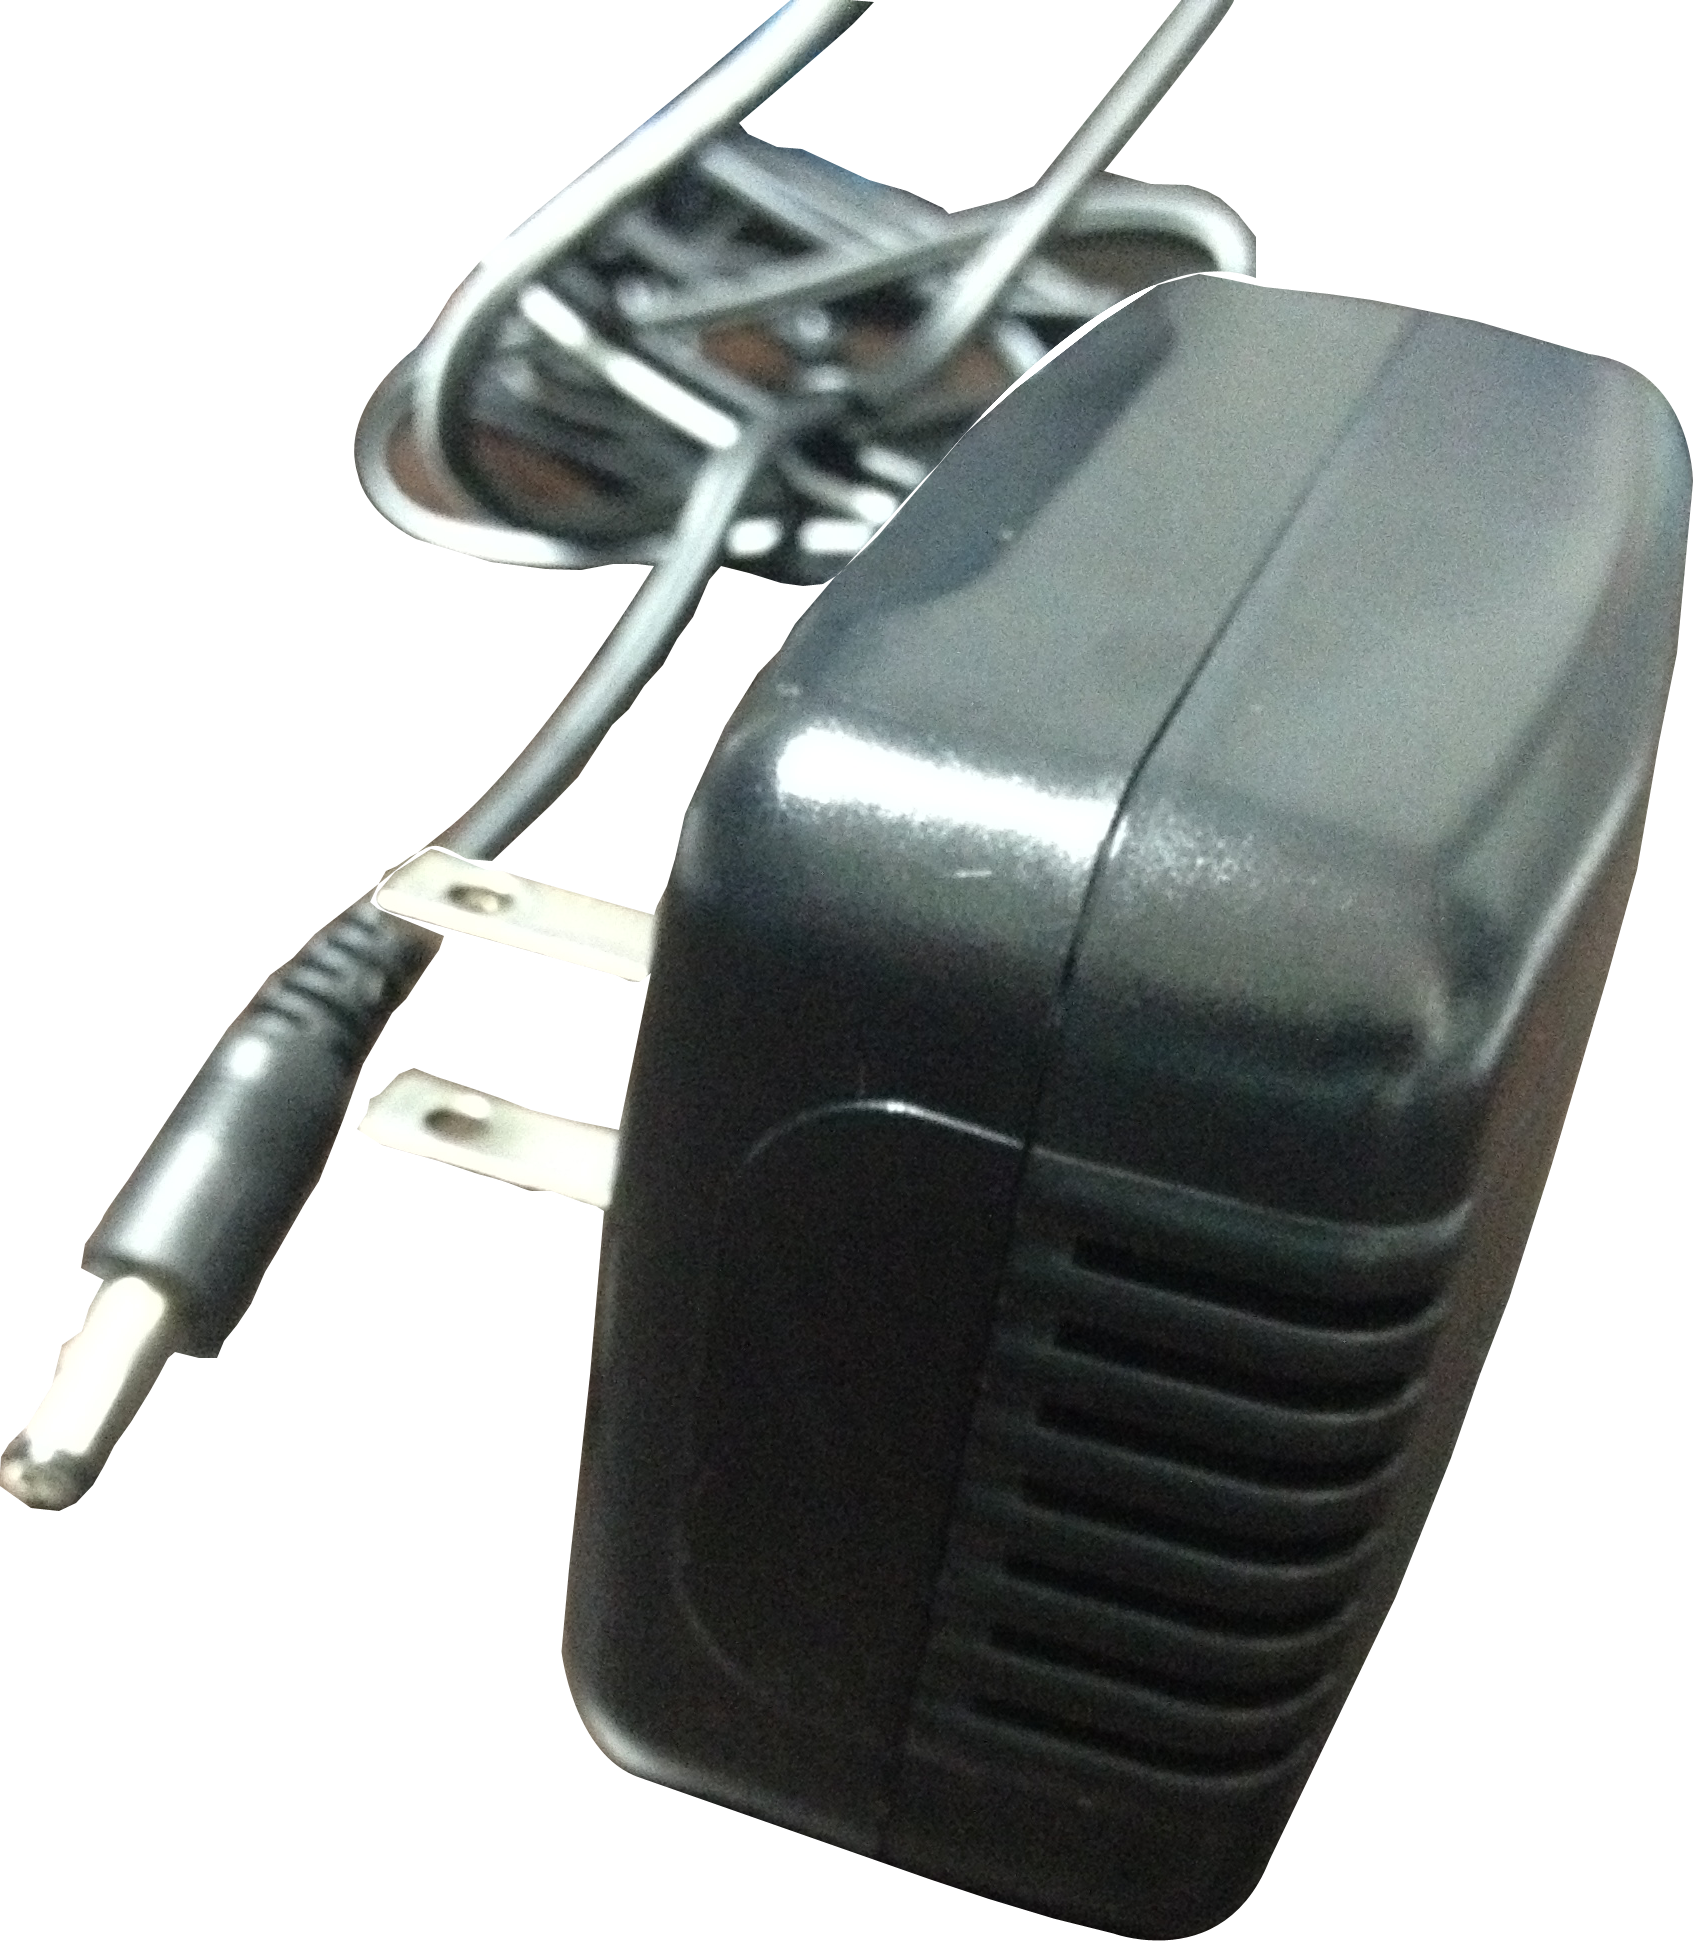 1202S02 (12V, 1A) Battery Charger